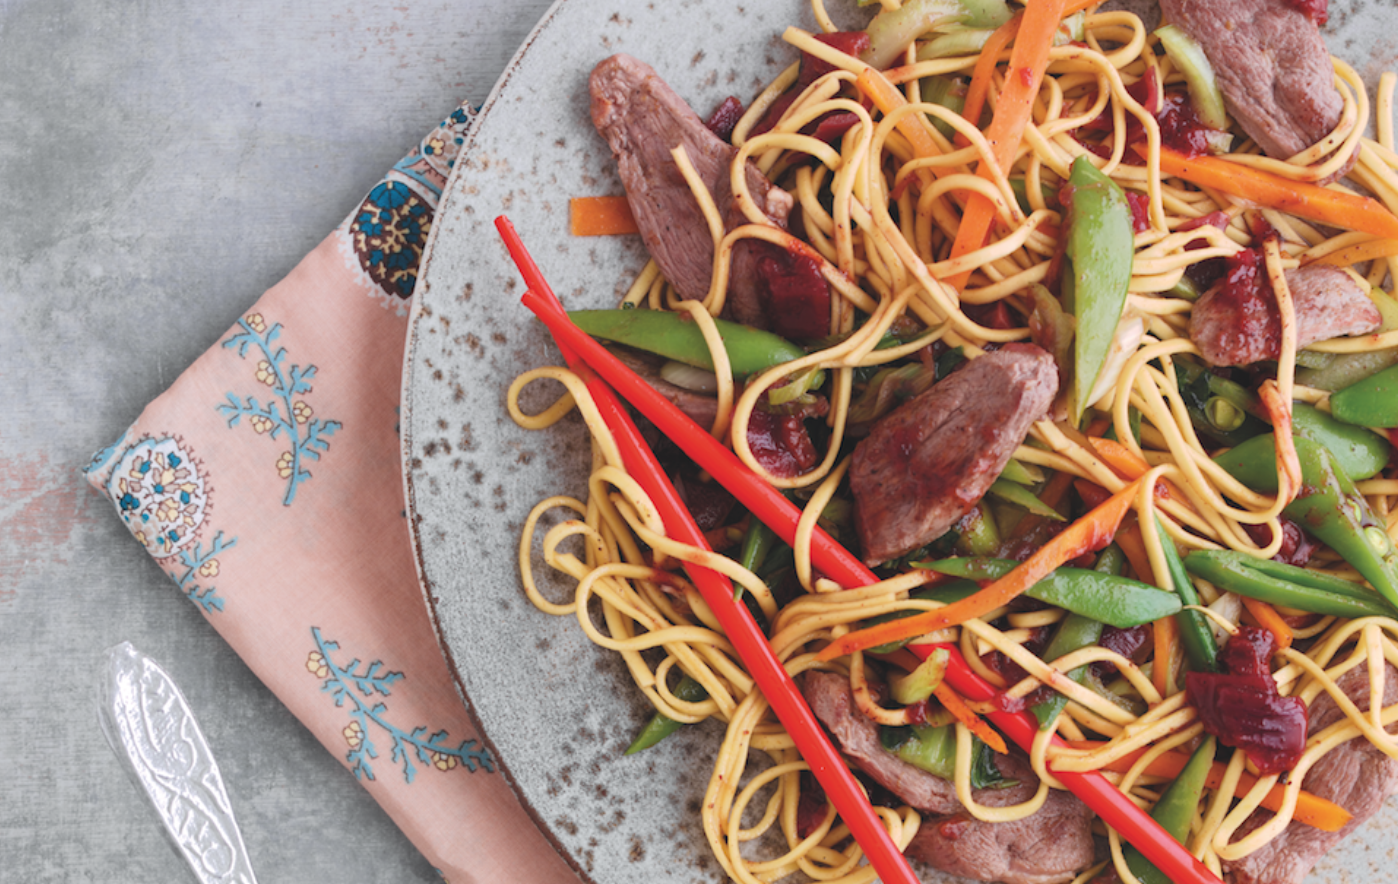 Plum Sauce with Duck Stir-Fry Recipe